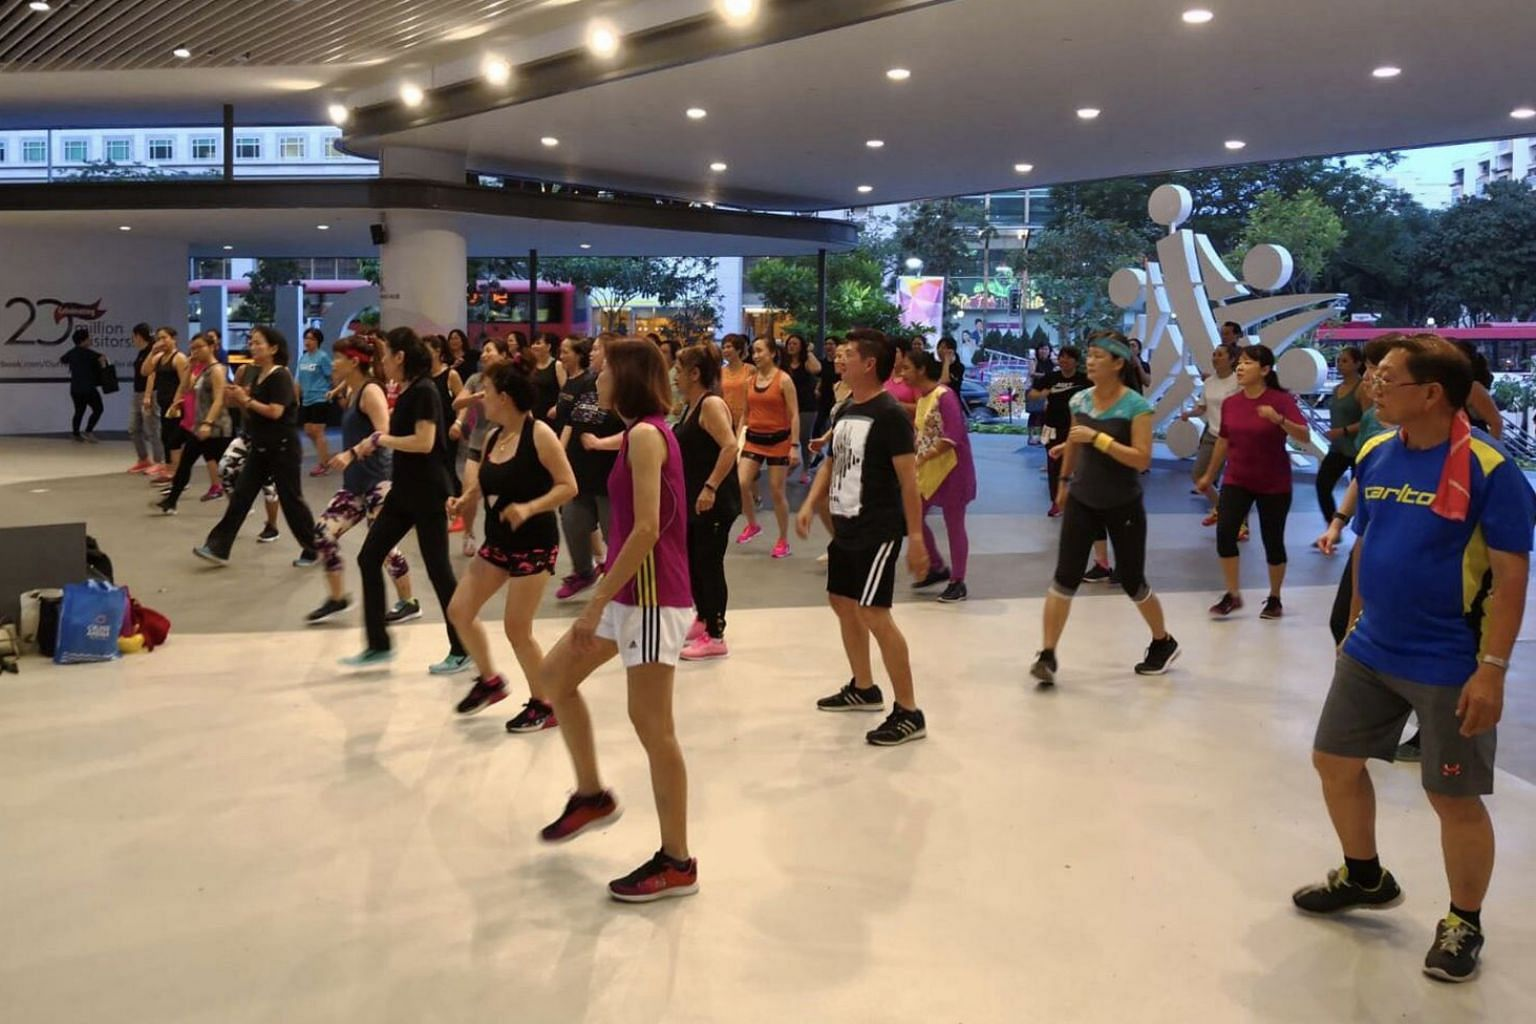 A Megadanz session being led by fitness instructor Heidi Lim at Gate 1 of Our Tampines Hub. This session, co-organised by People's Association, Our Tampines Hub and Alpha Fitness, takes place every Friday from 7pm to 8pm and is free.